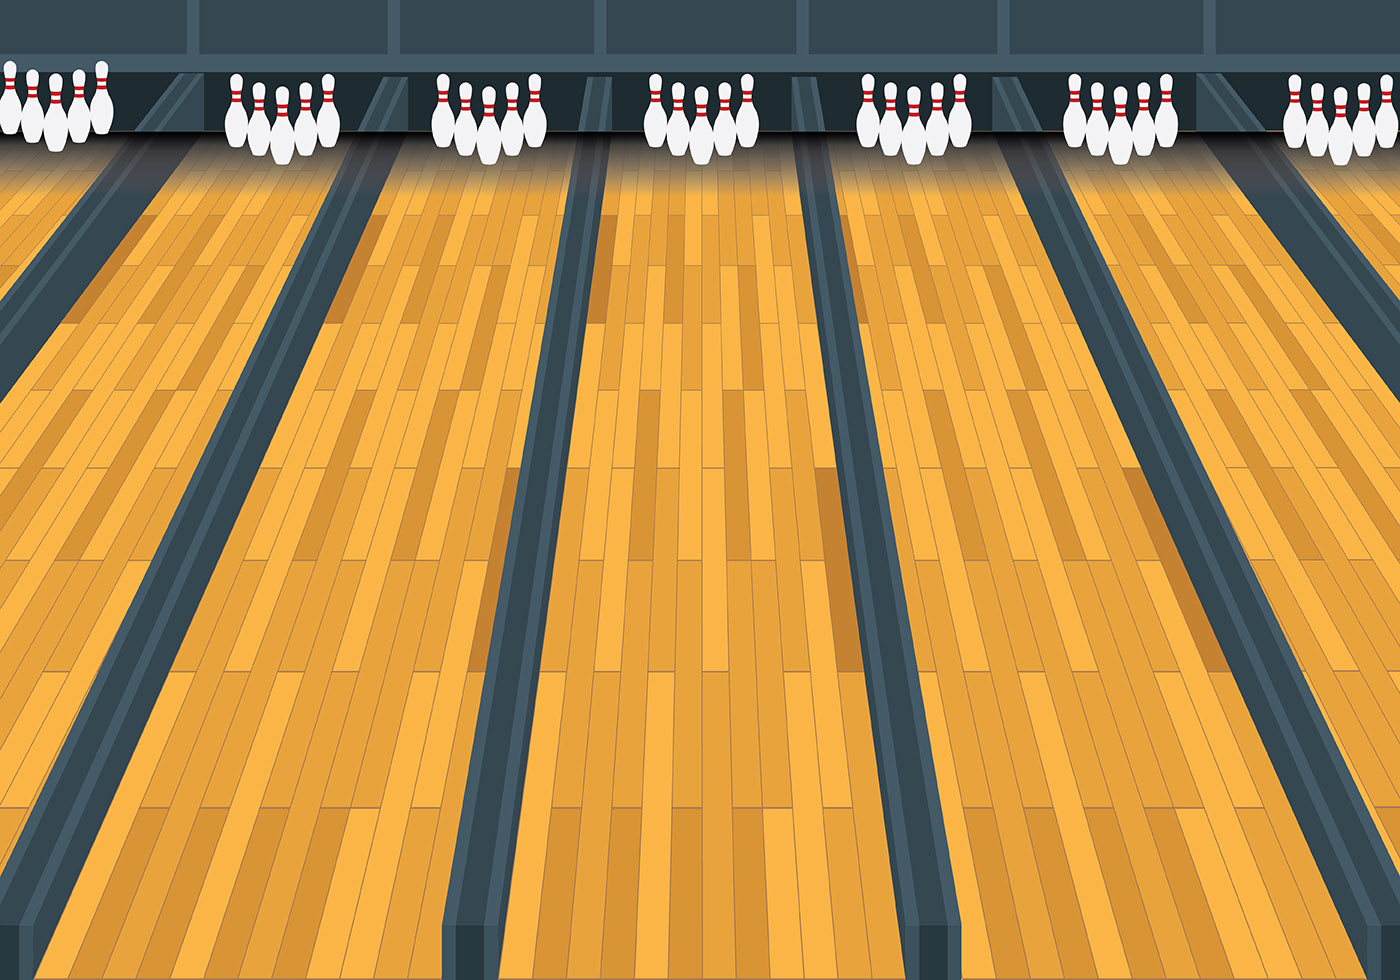 hight resolution of free bowling lane vector background download free vector art stock graphics images